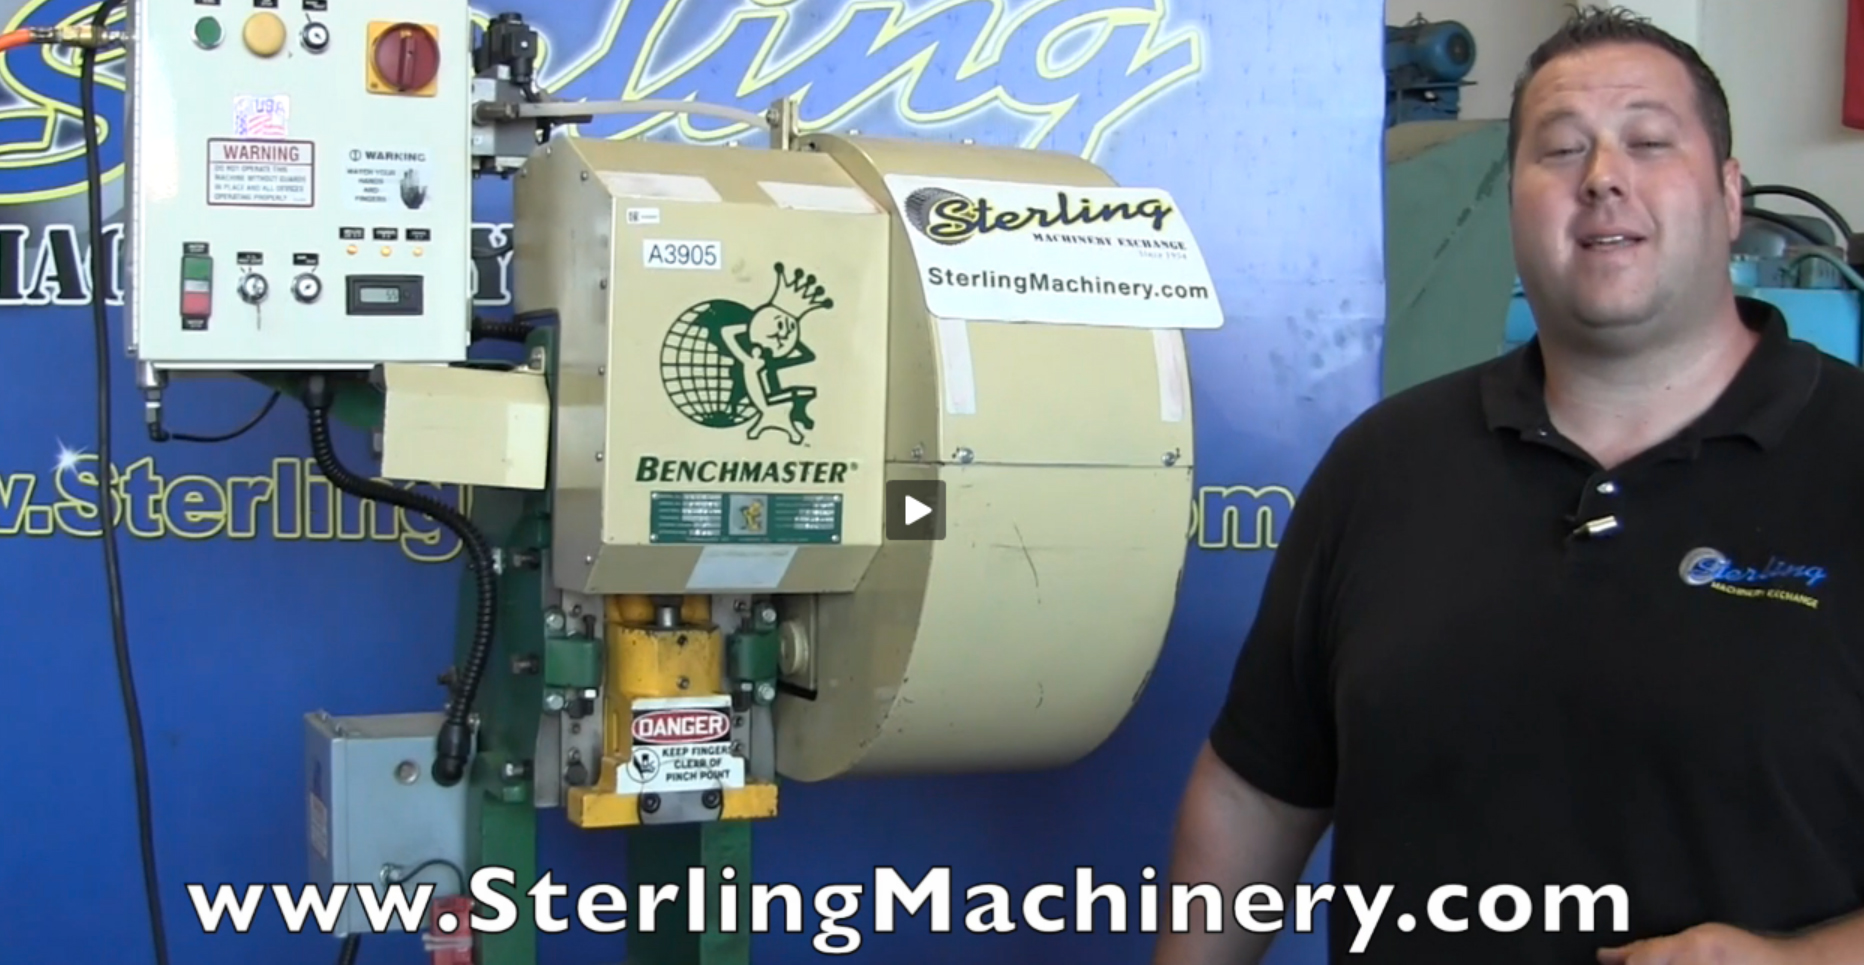 Machinery Videos Of Dealer Machine Tools Showing Used Lathe Milling M60 Mcb Circuit Breaker Mini China 15 Ton X 2 Benchmaster Obi Punch Press Late Model Like New Mdl 251a Dual Palm Buttons Emergency Stop Air Clutch Brake